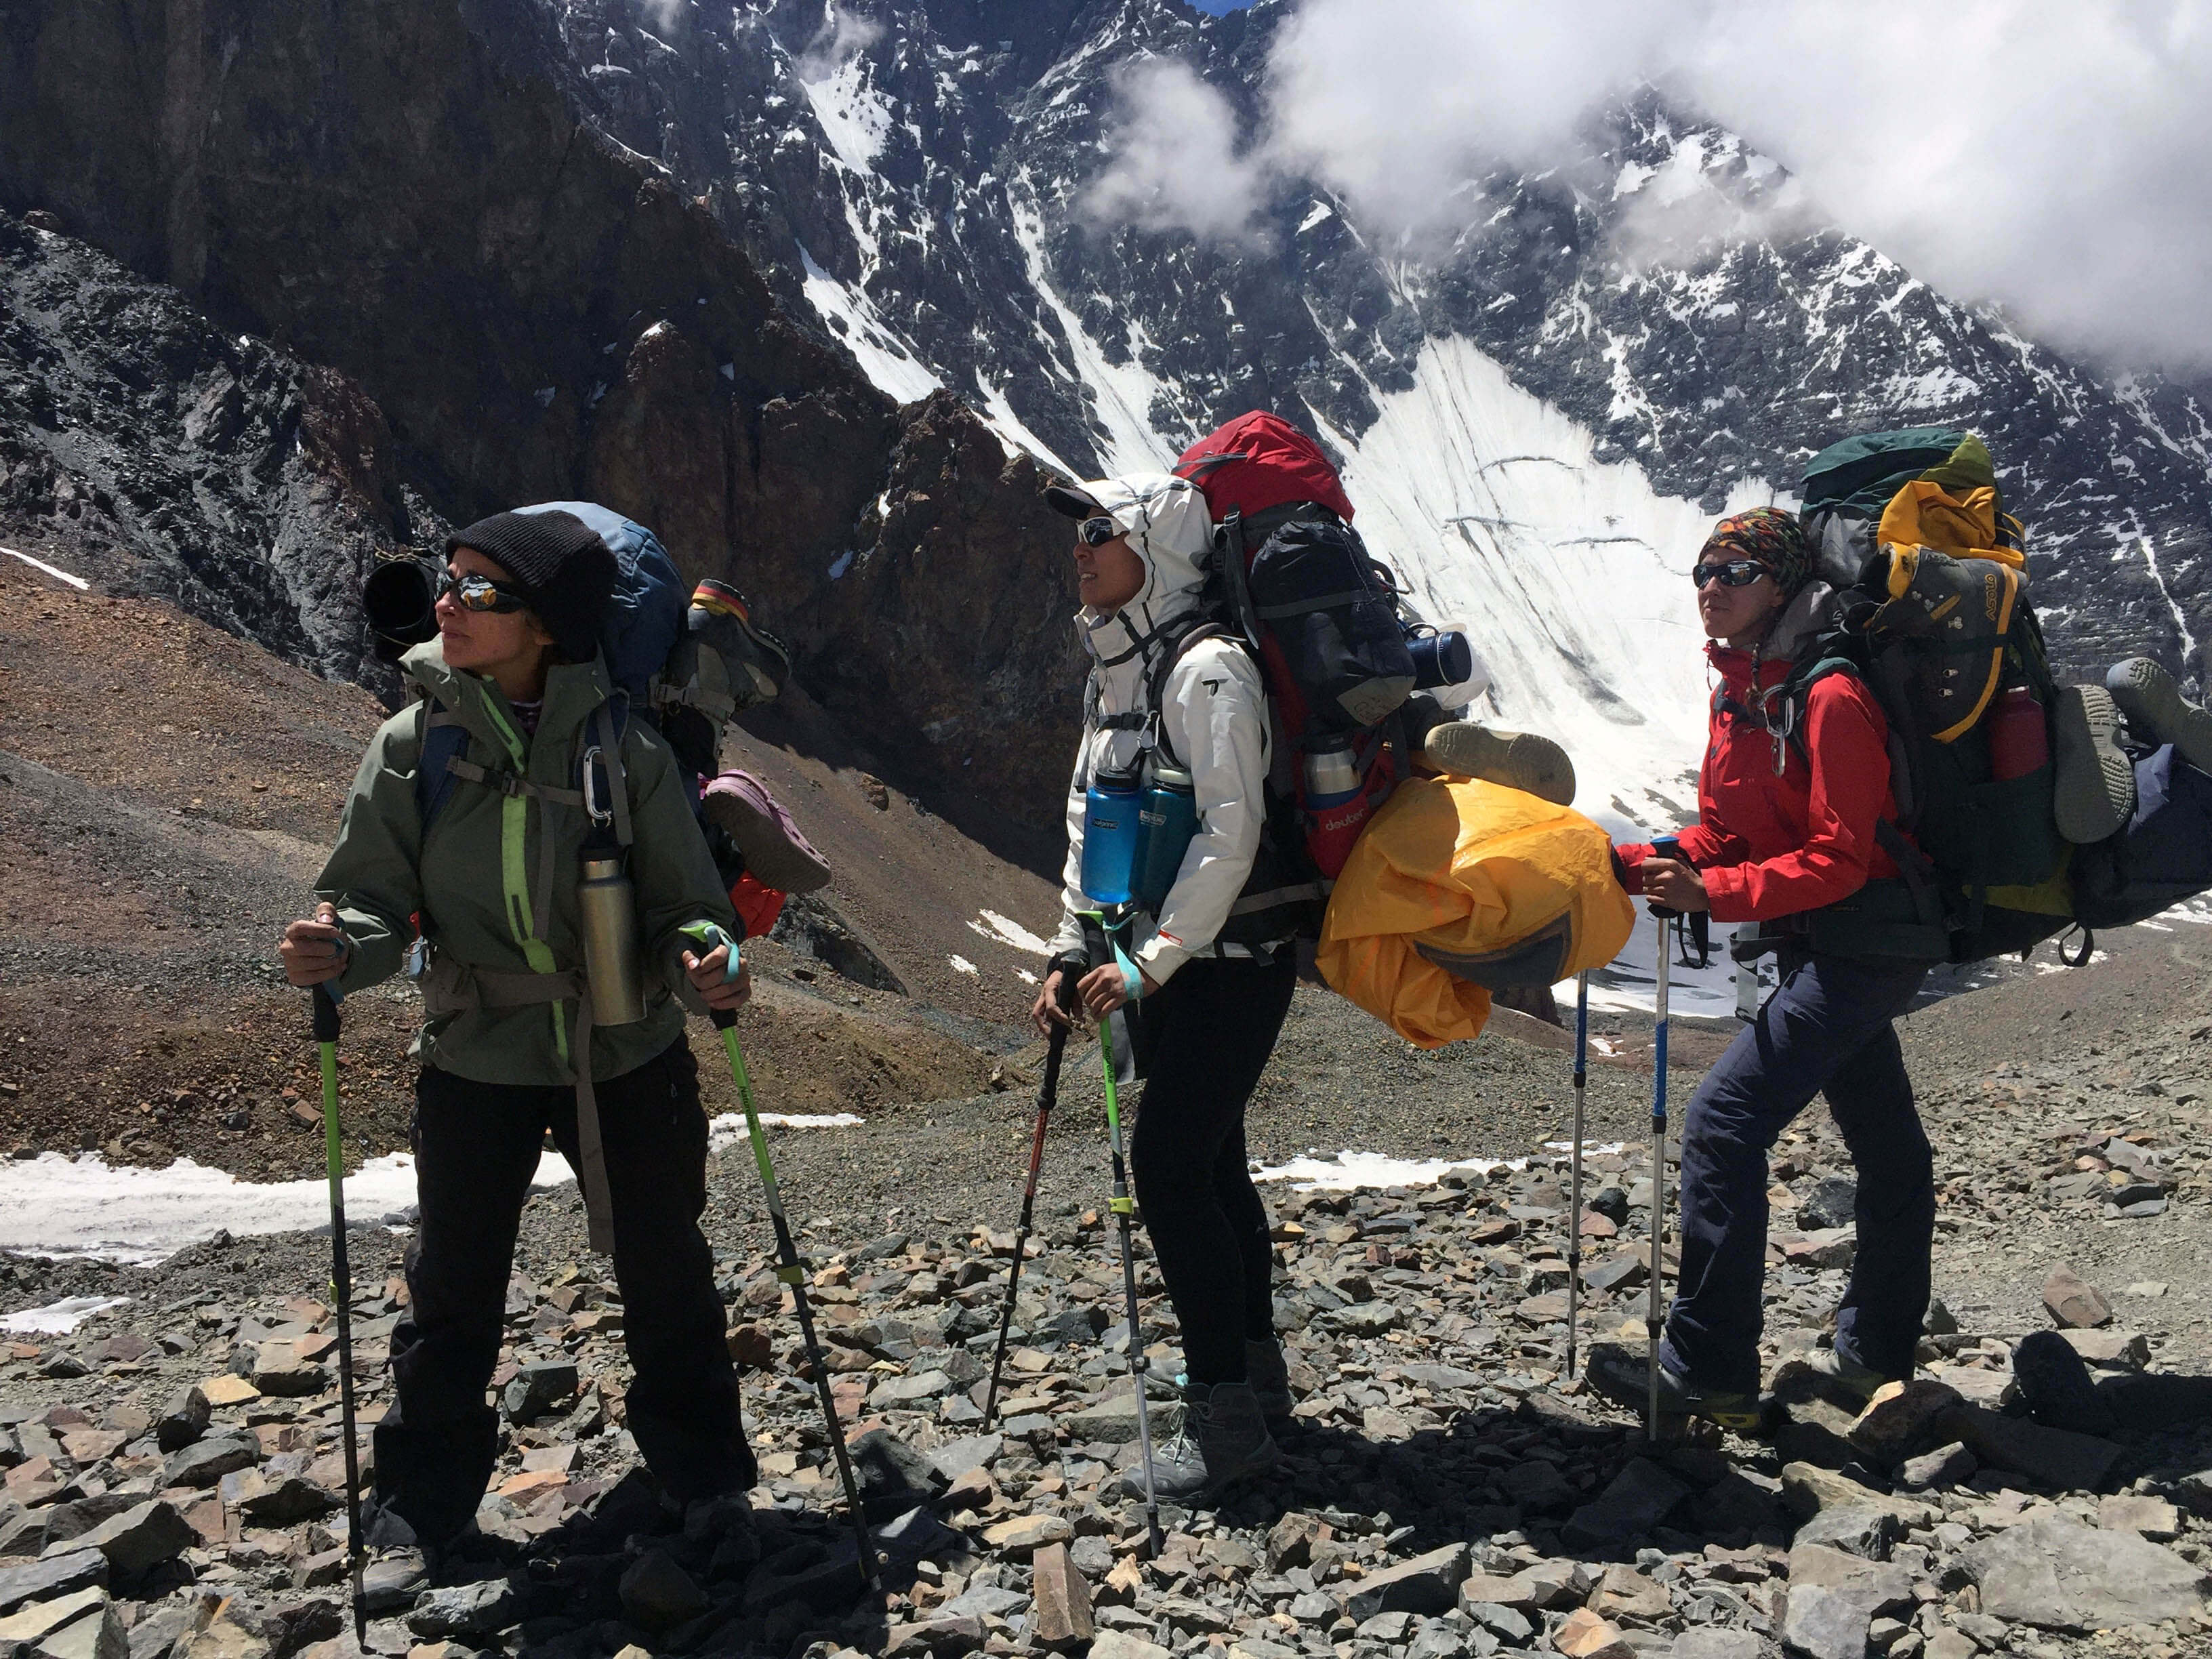 women expedition to develop leadership skills